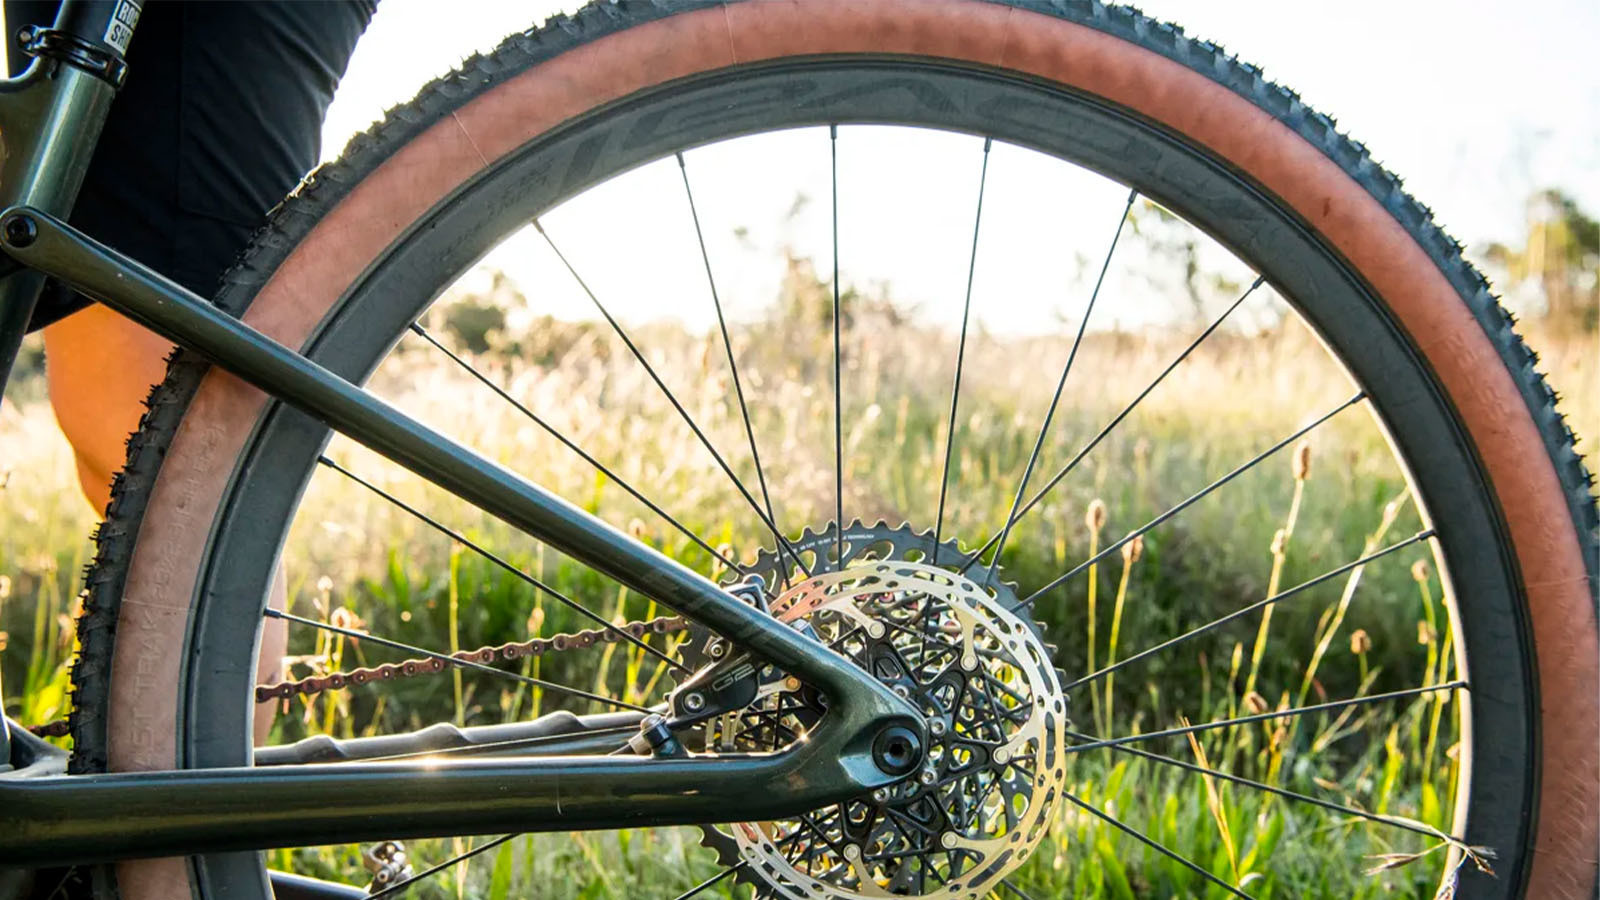 Around, Down, and Cross Country - Roval Control SL Wheelset